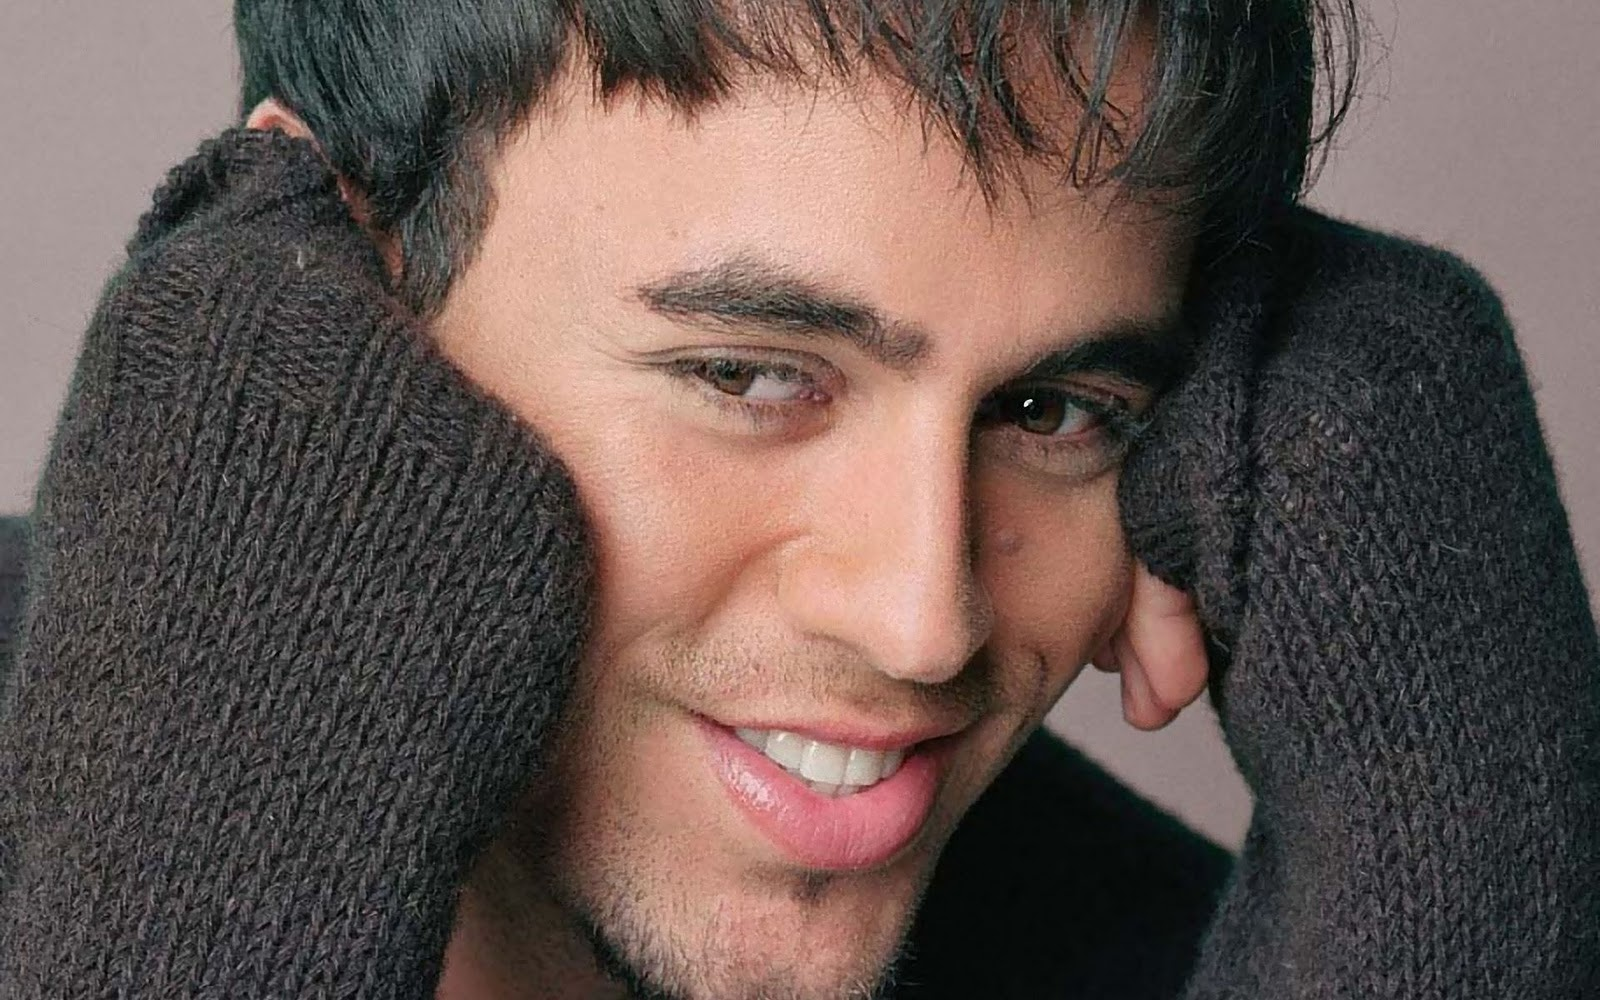 ENRIQUE IGLESIAS HD WALLPAPERS 2013:Image for pc wallpaper